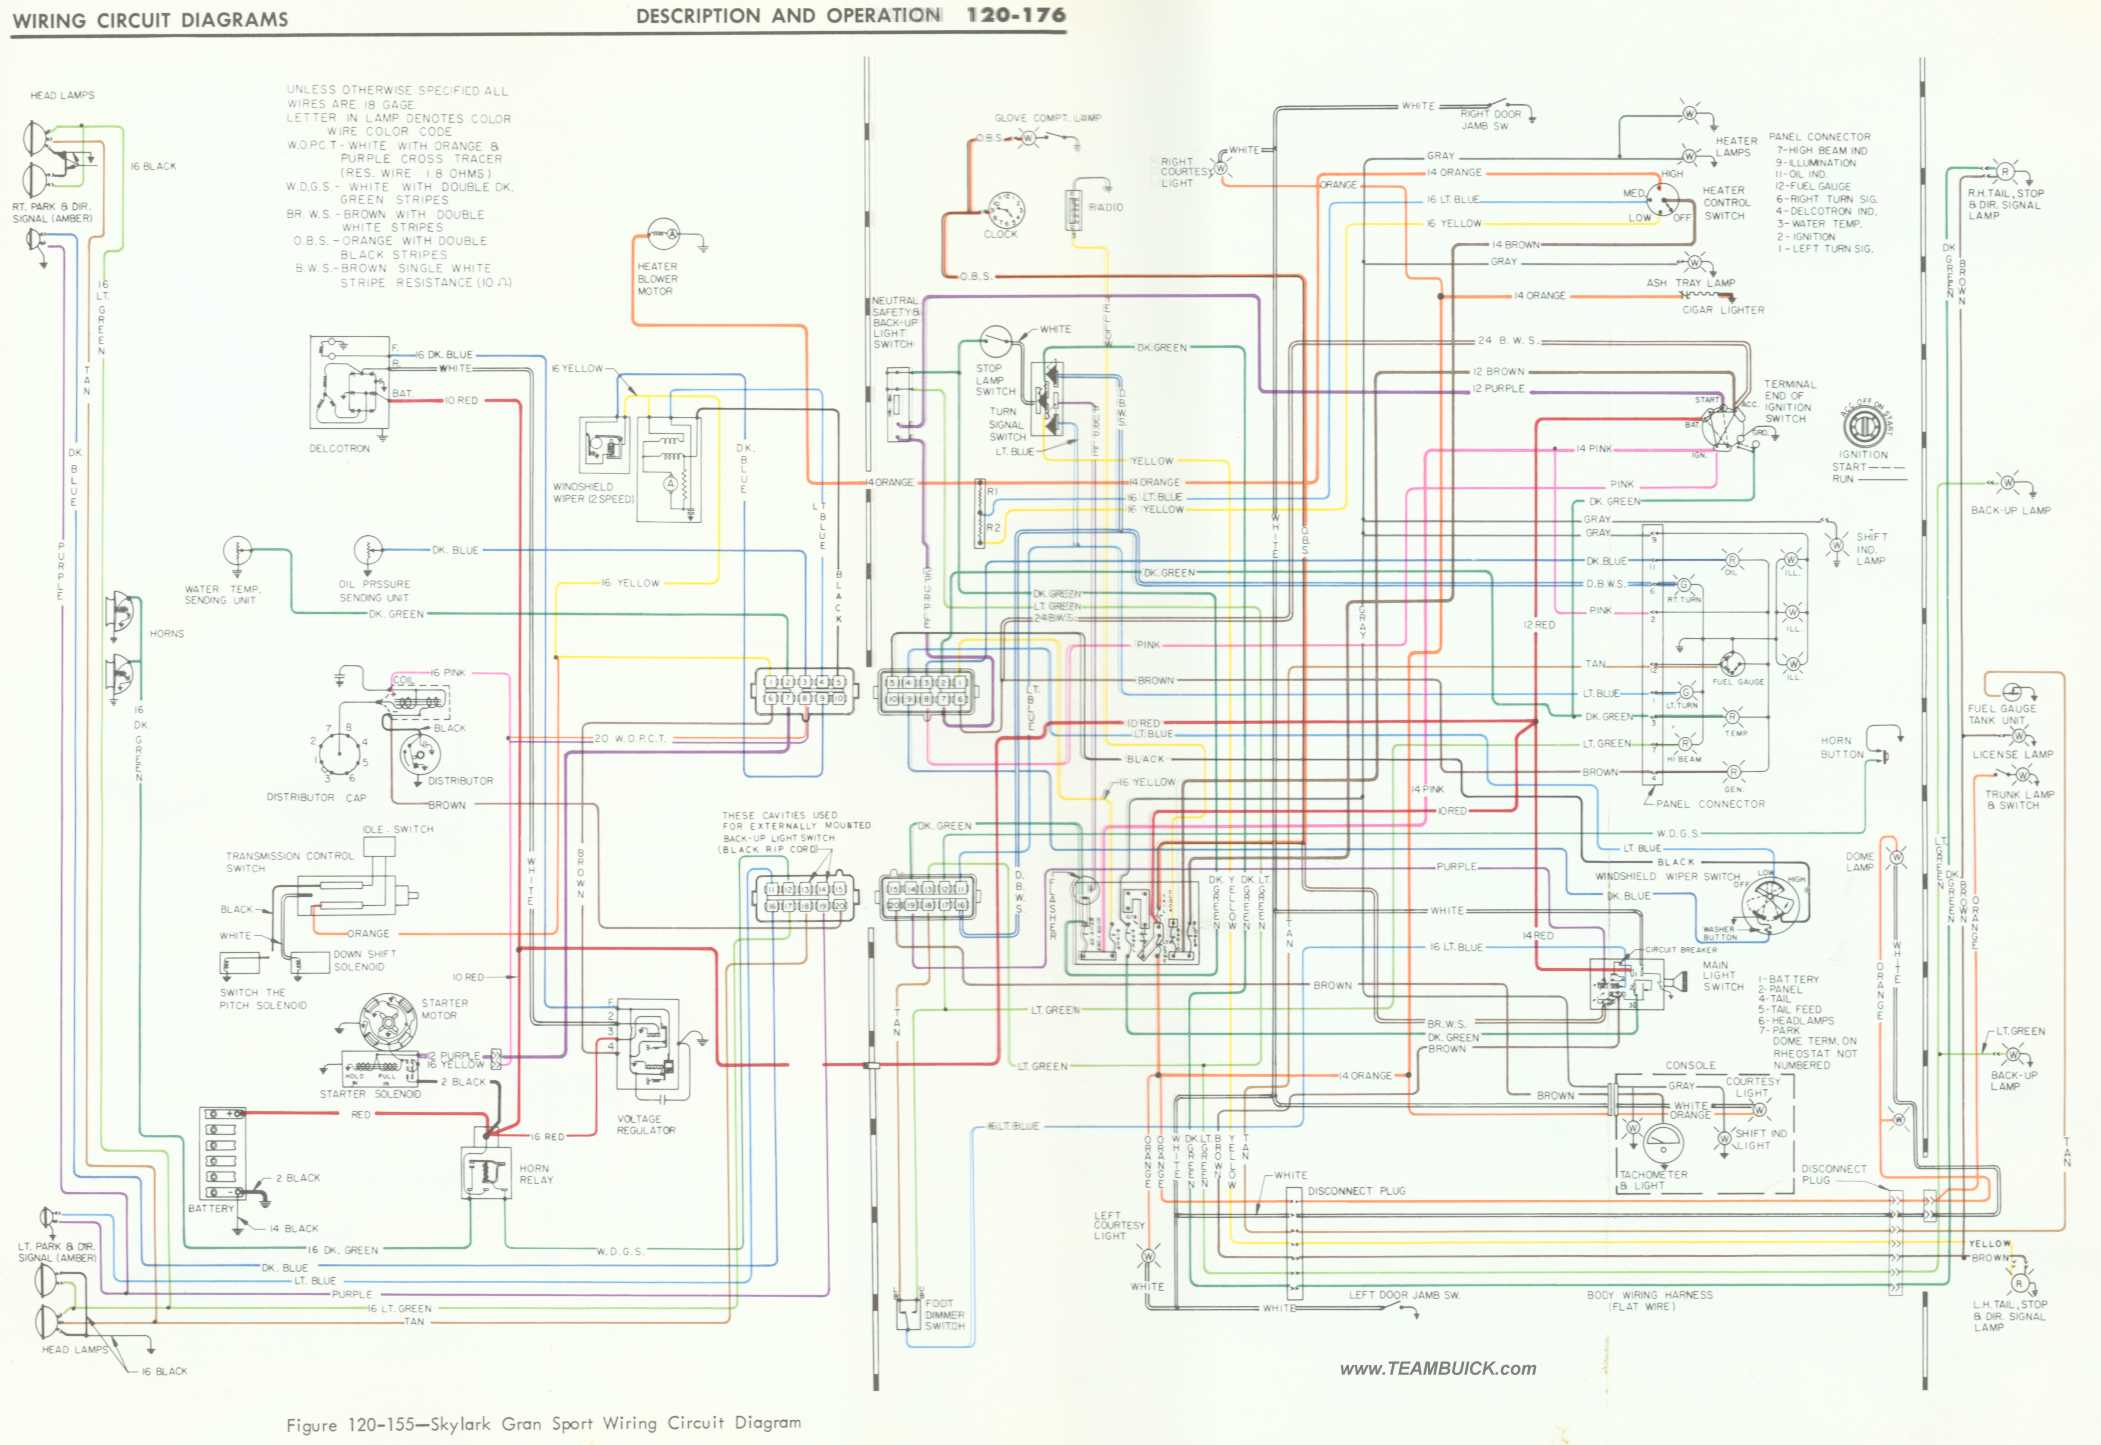 4l60e Neutral Safety Switch Wiring Diagram Hecho Auto Electrical Monster Transmission Harness 1966 Buick Skylark Gas Pedal